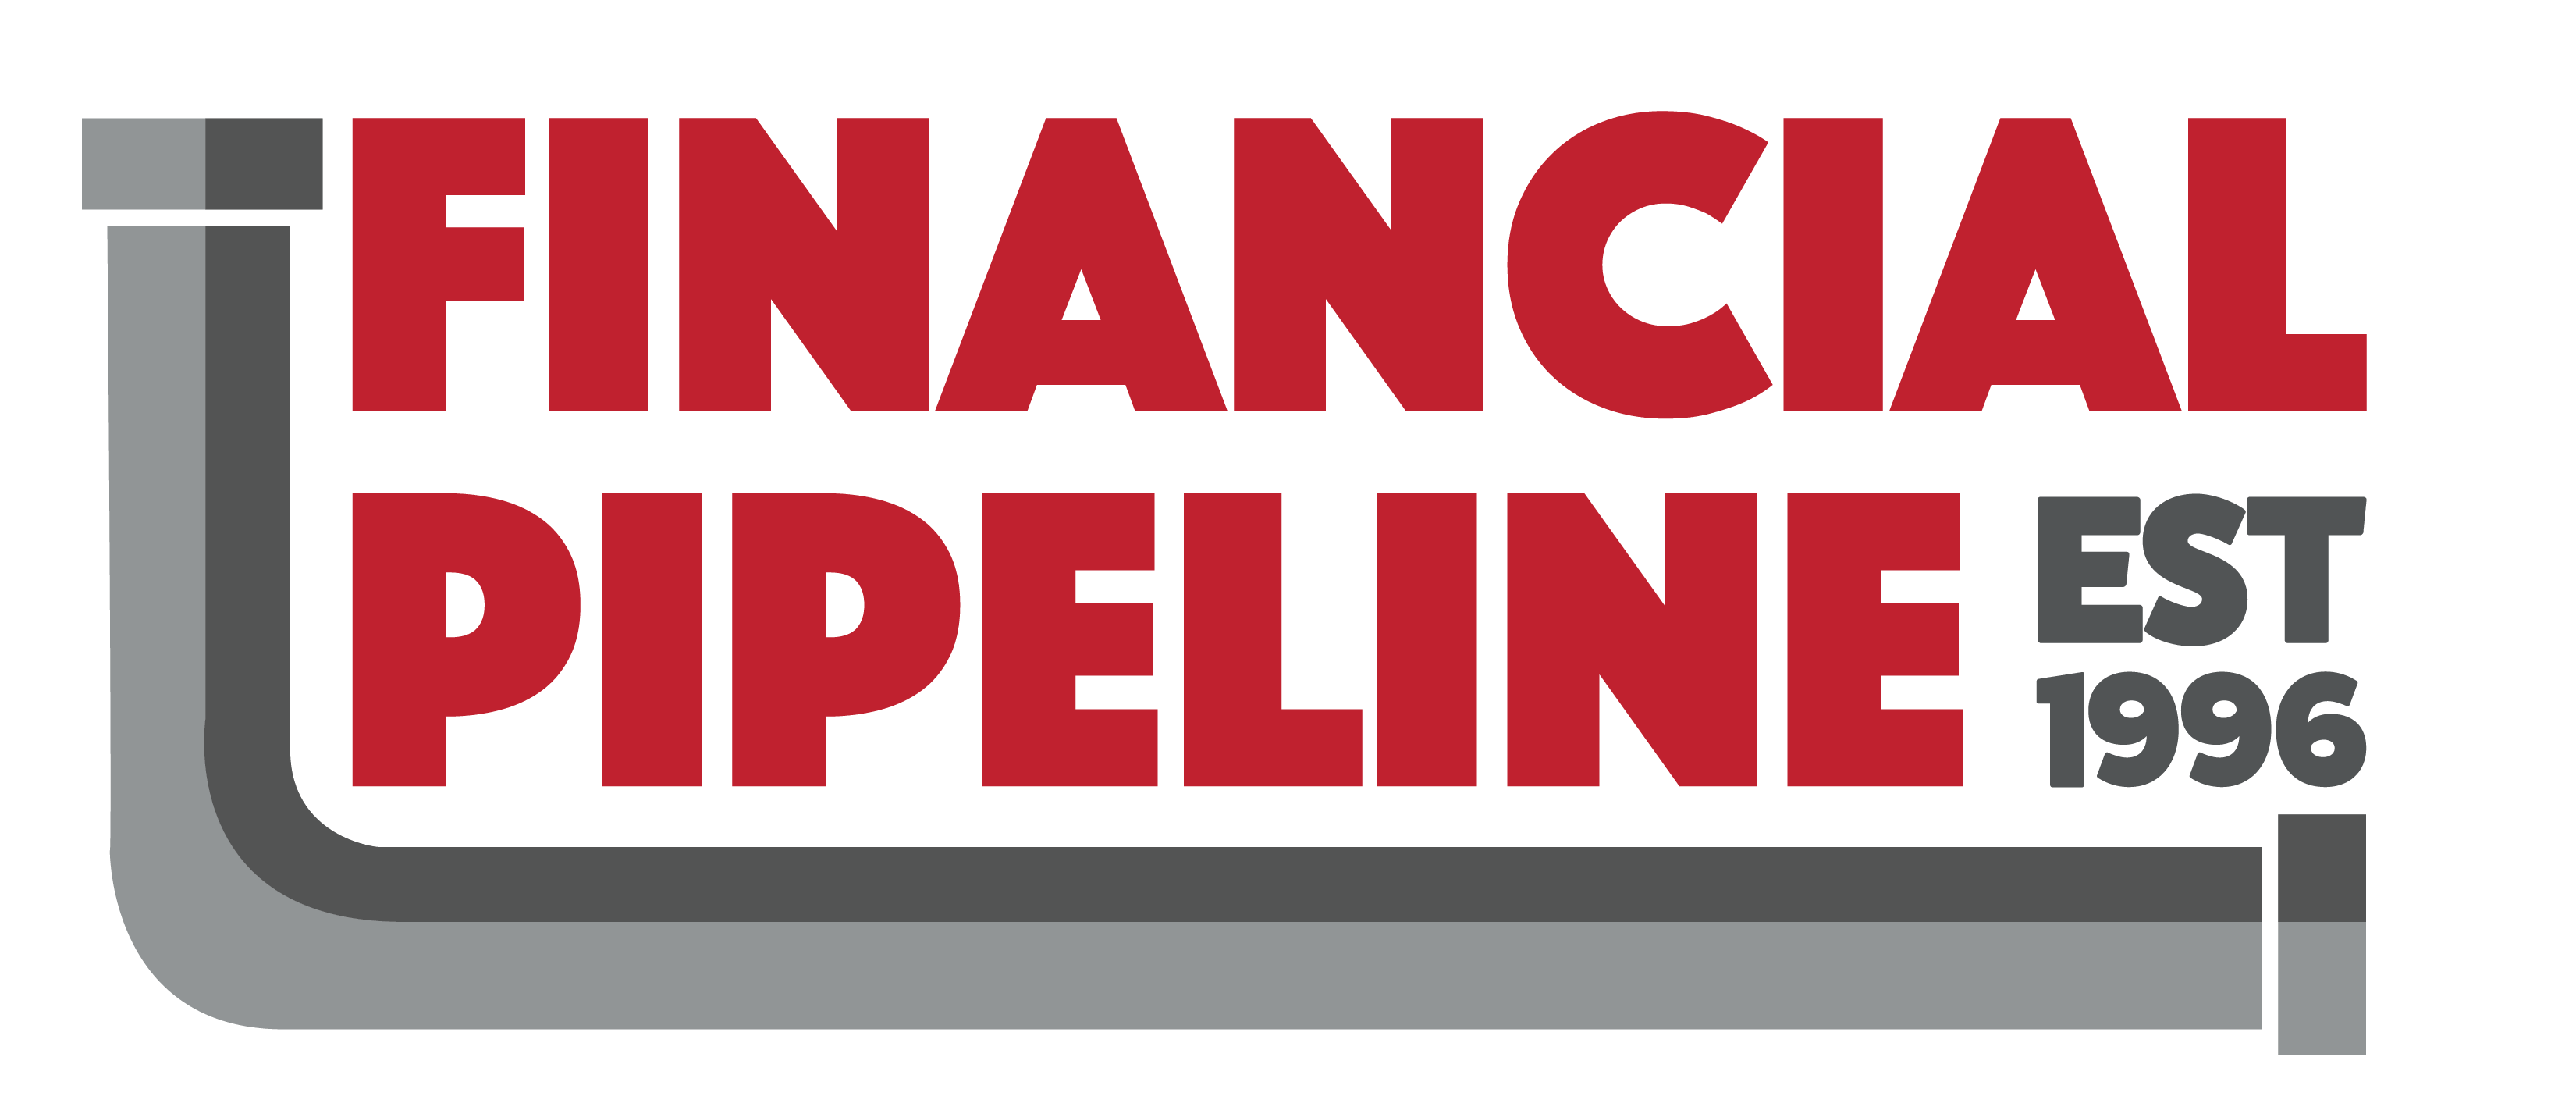 The Financial Pipeline